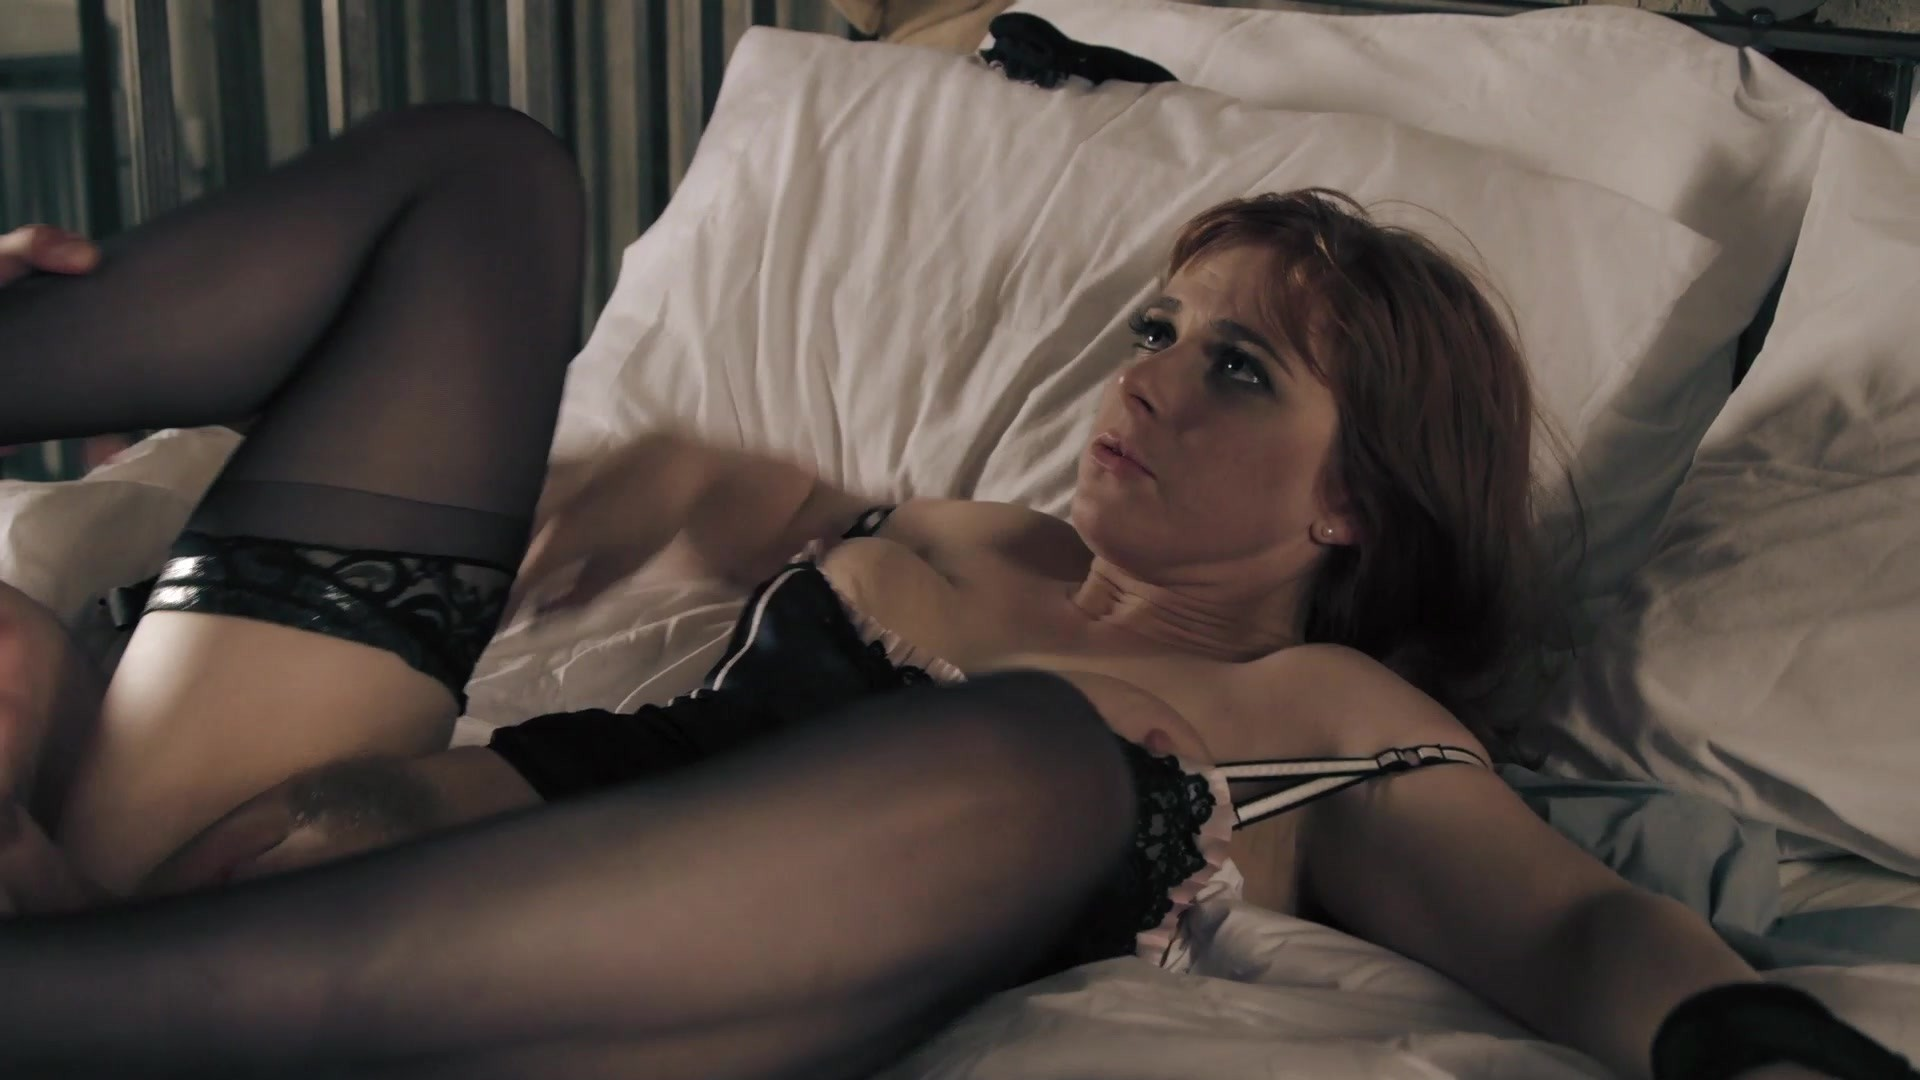 Scene with Ryan Driller and Penny Pax - image 16 out of 20